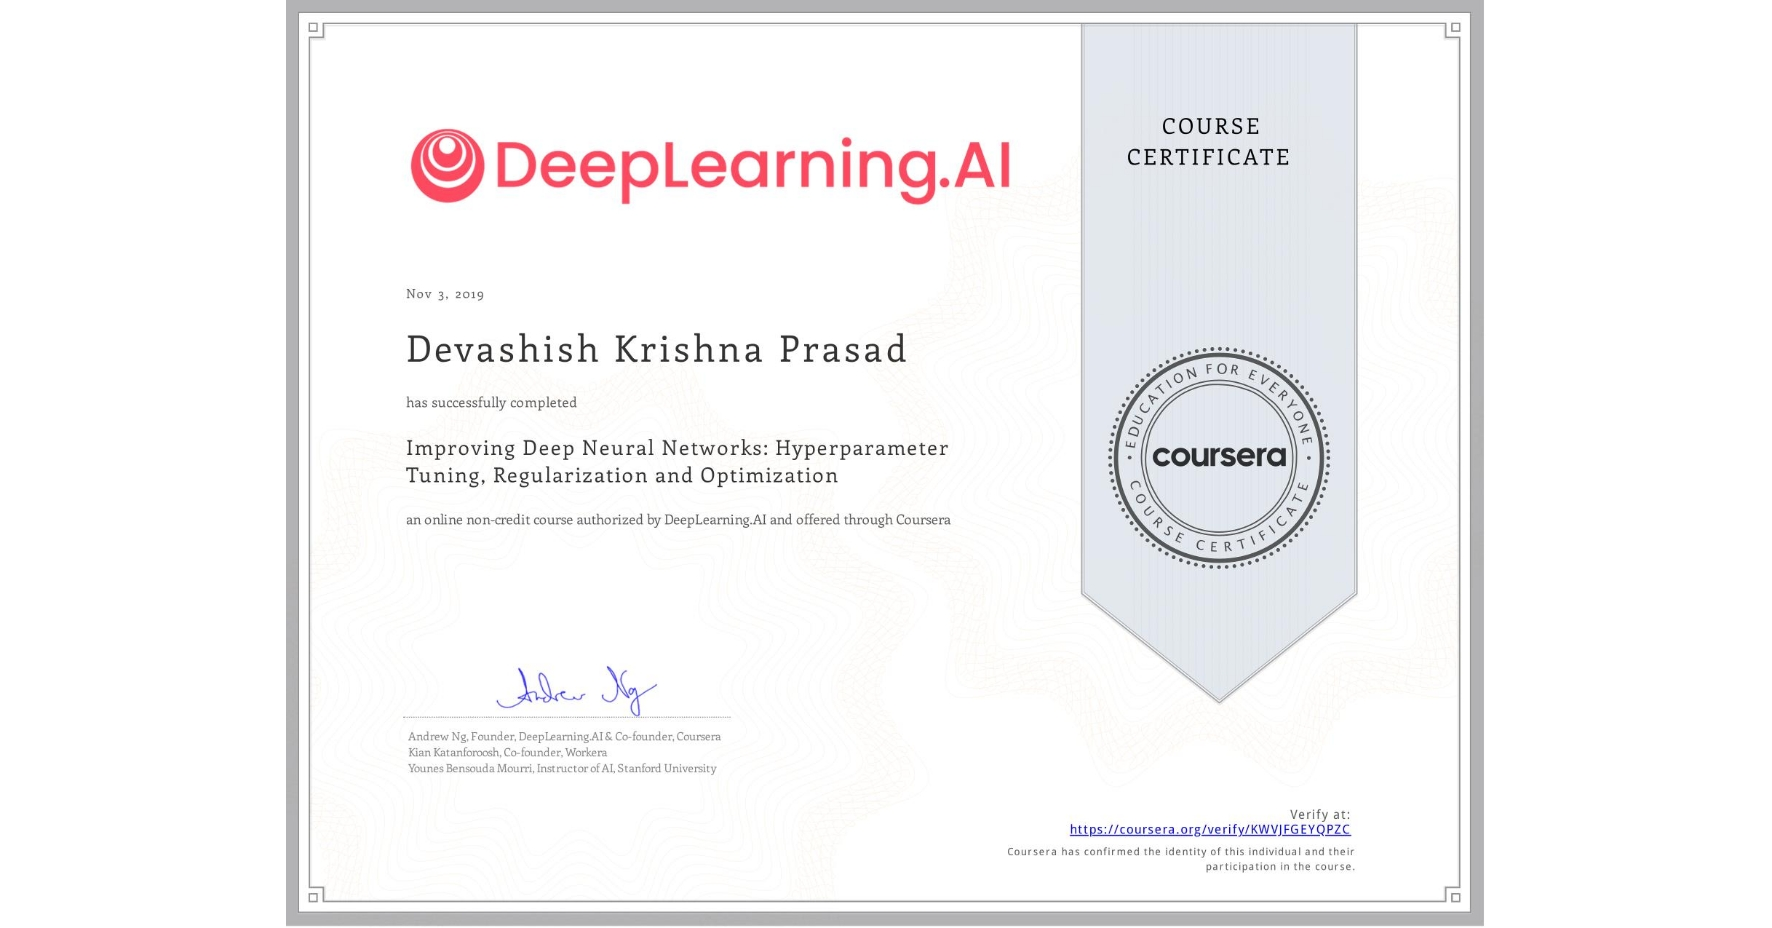 View certificate for Devashish Krishna Prasad, Improving Deep Neural Networks: Hyperparameter Tuning, Regularization and Optimization, an online non-credit course authorized by DeepLearning.AI and offered through Coursera